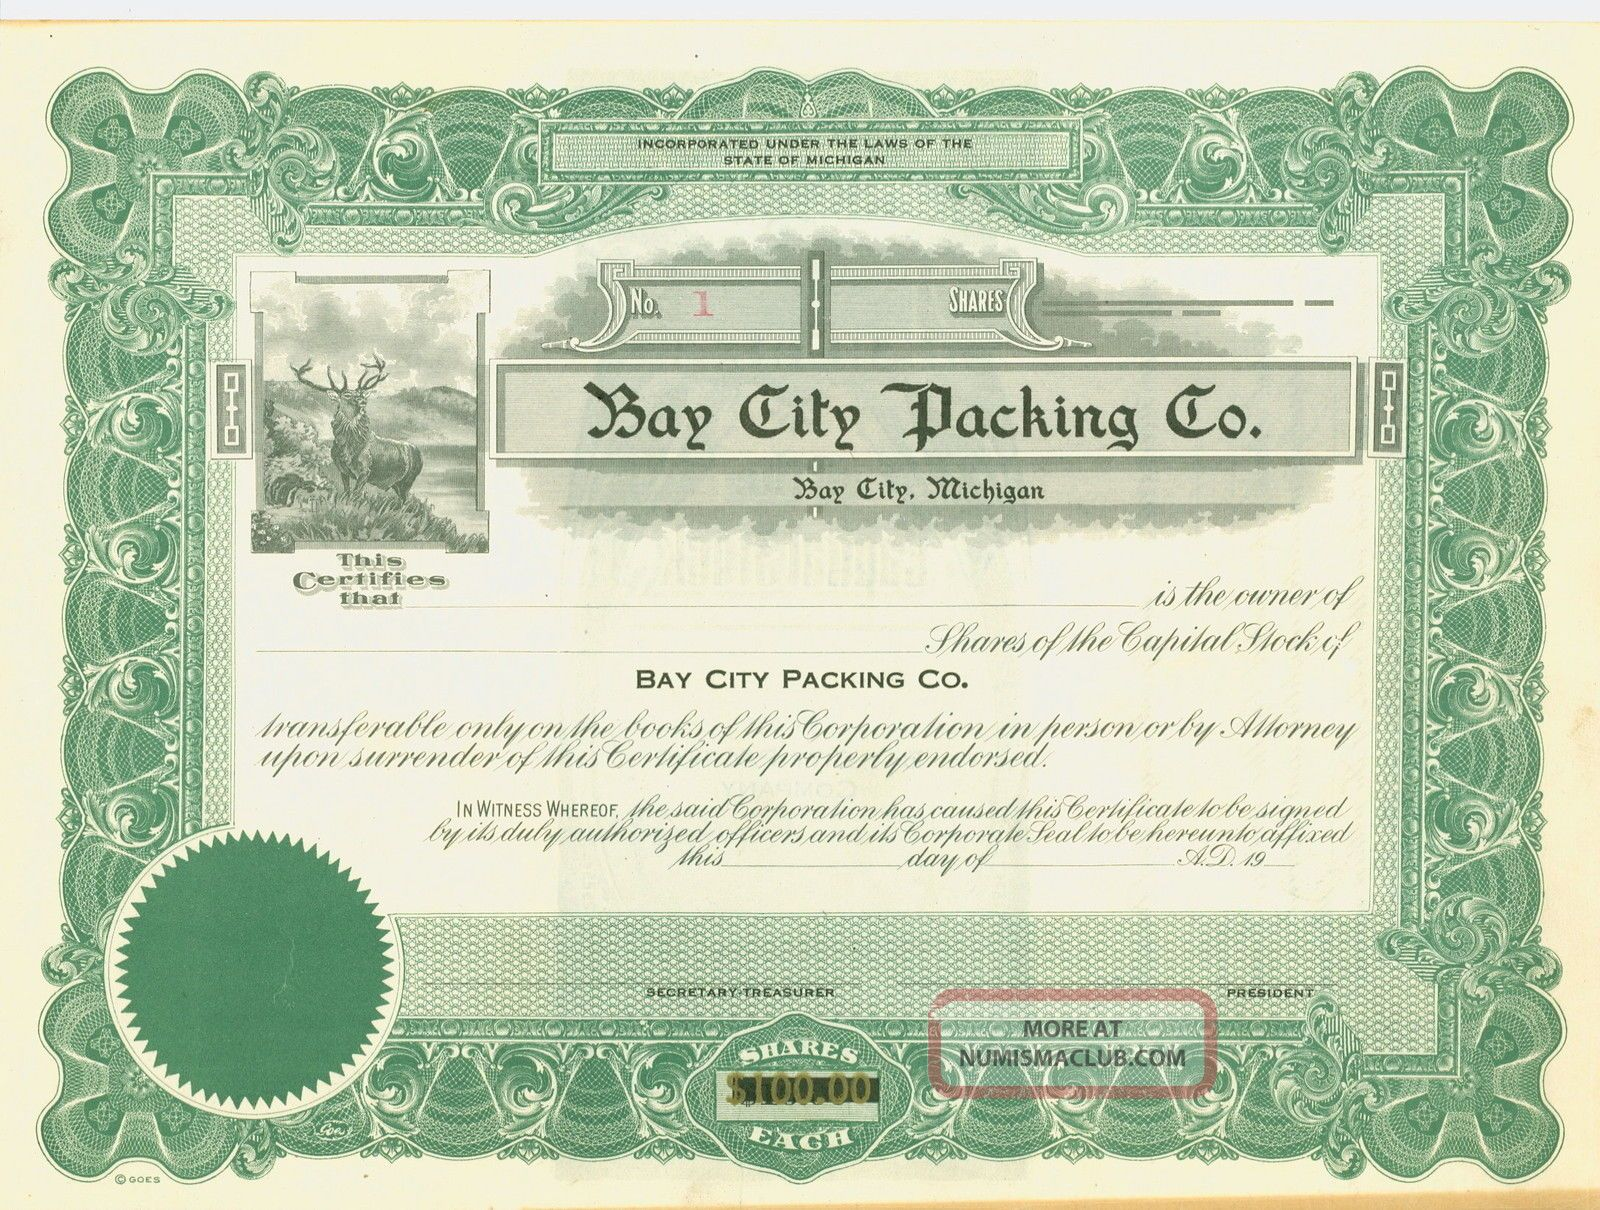 Bay City Packing Co.  Green Stock Certificate Stocks & Bonds, Scripophily photo